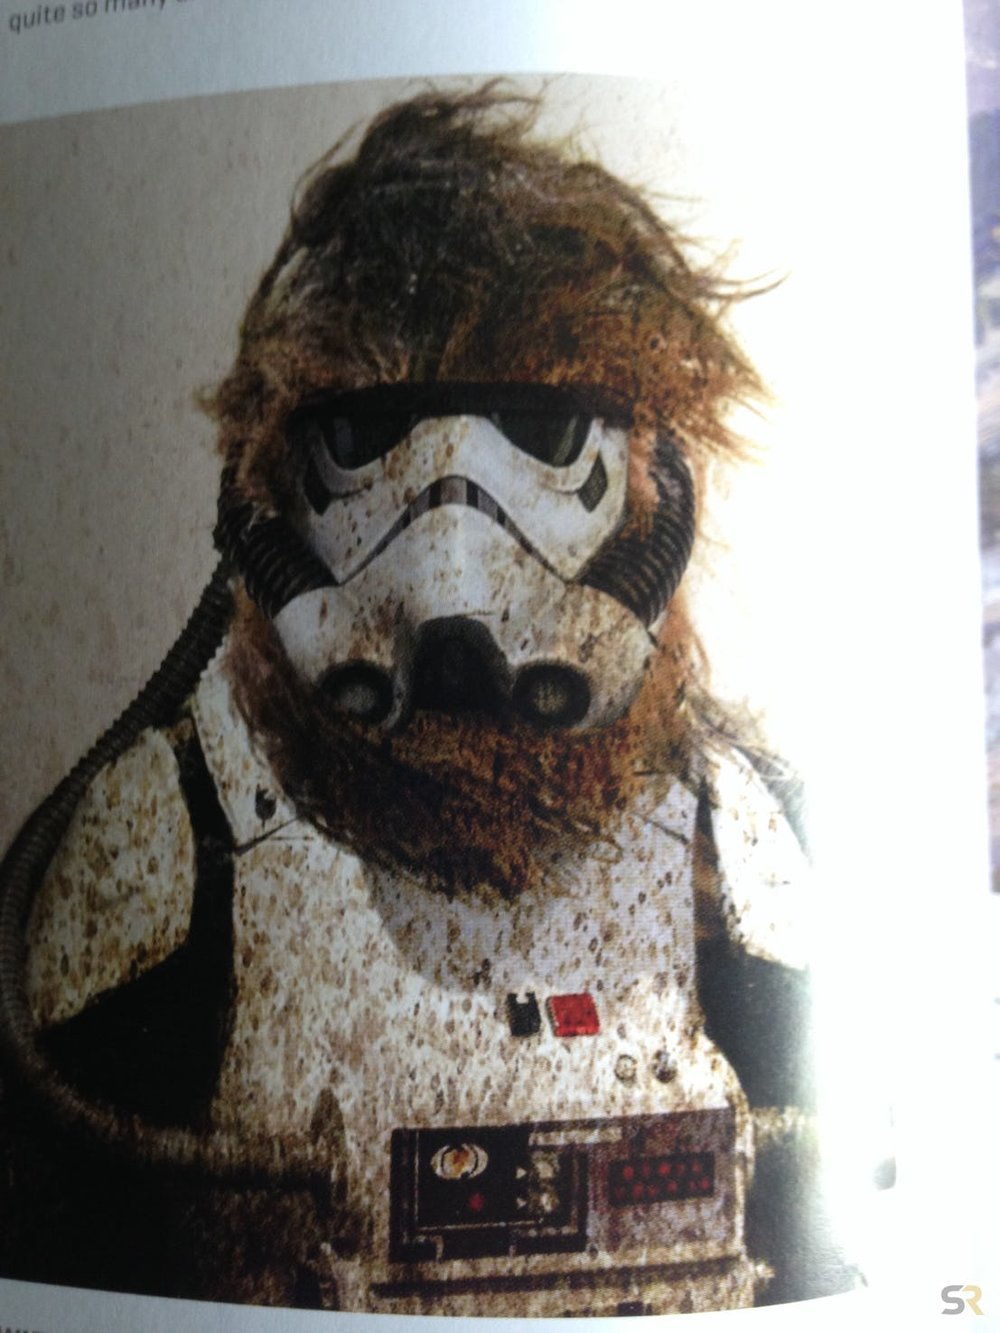 early-solo-concept-art-show-wookie-stormtroopers-and-original-dryden-vox-alien-designs3